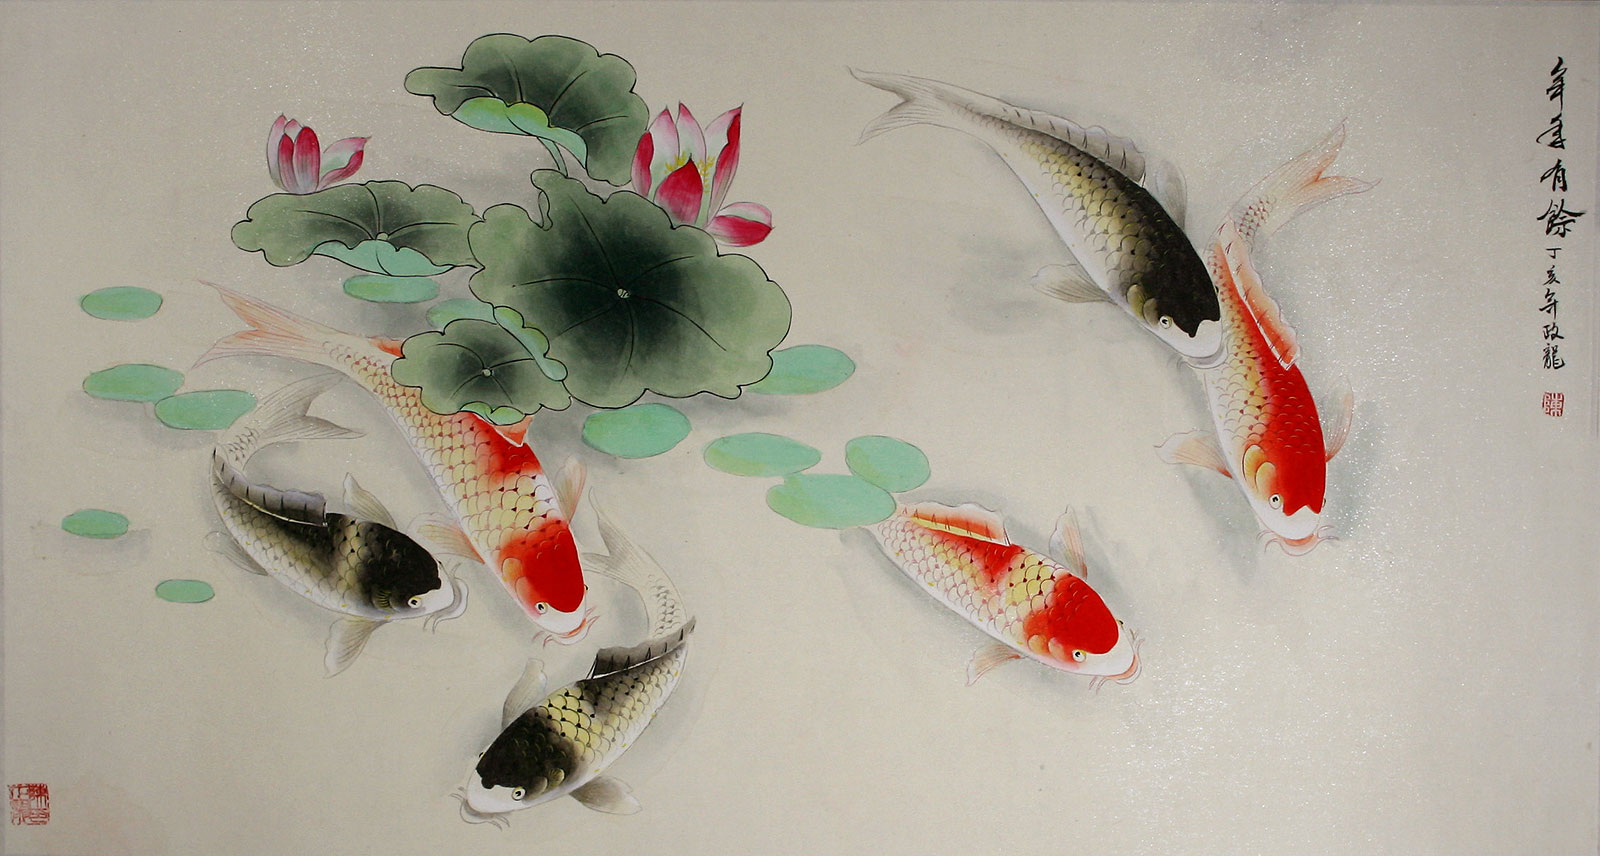 Chinese Coy Fish Of Chinese Koi Fish Watercolor Artwork Asian Koi Fish Paintings Wall Scrolls Chinese Artwork